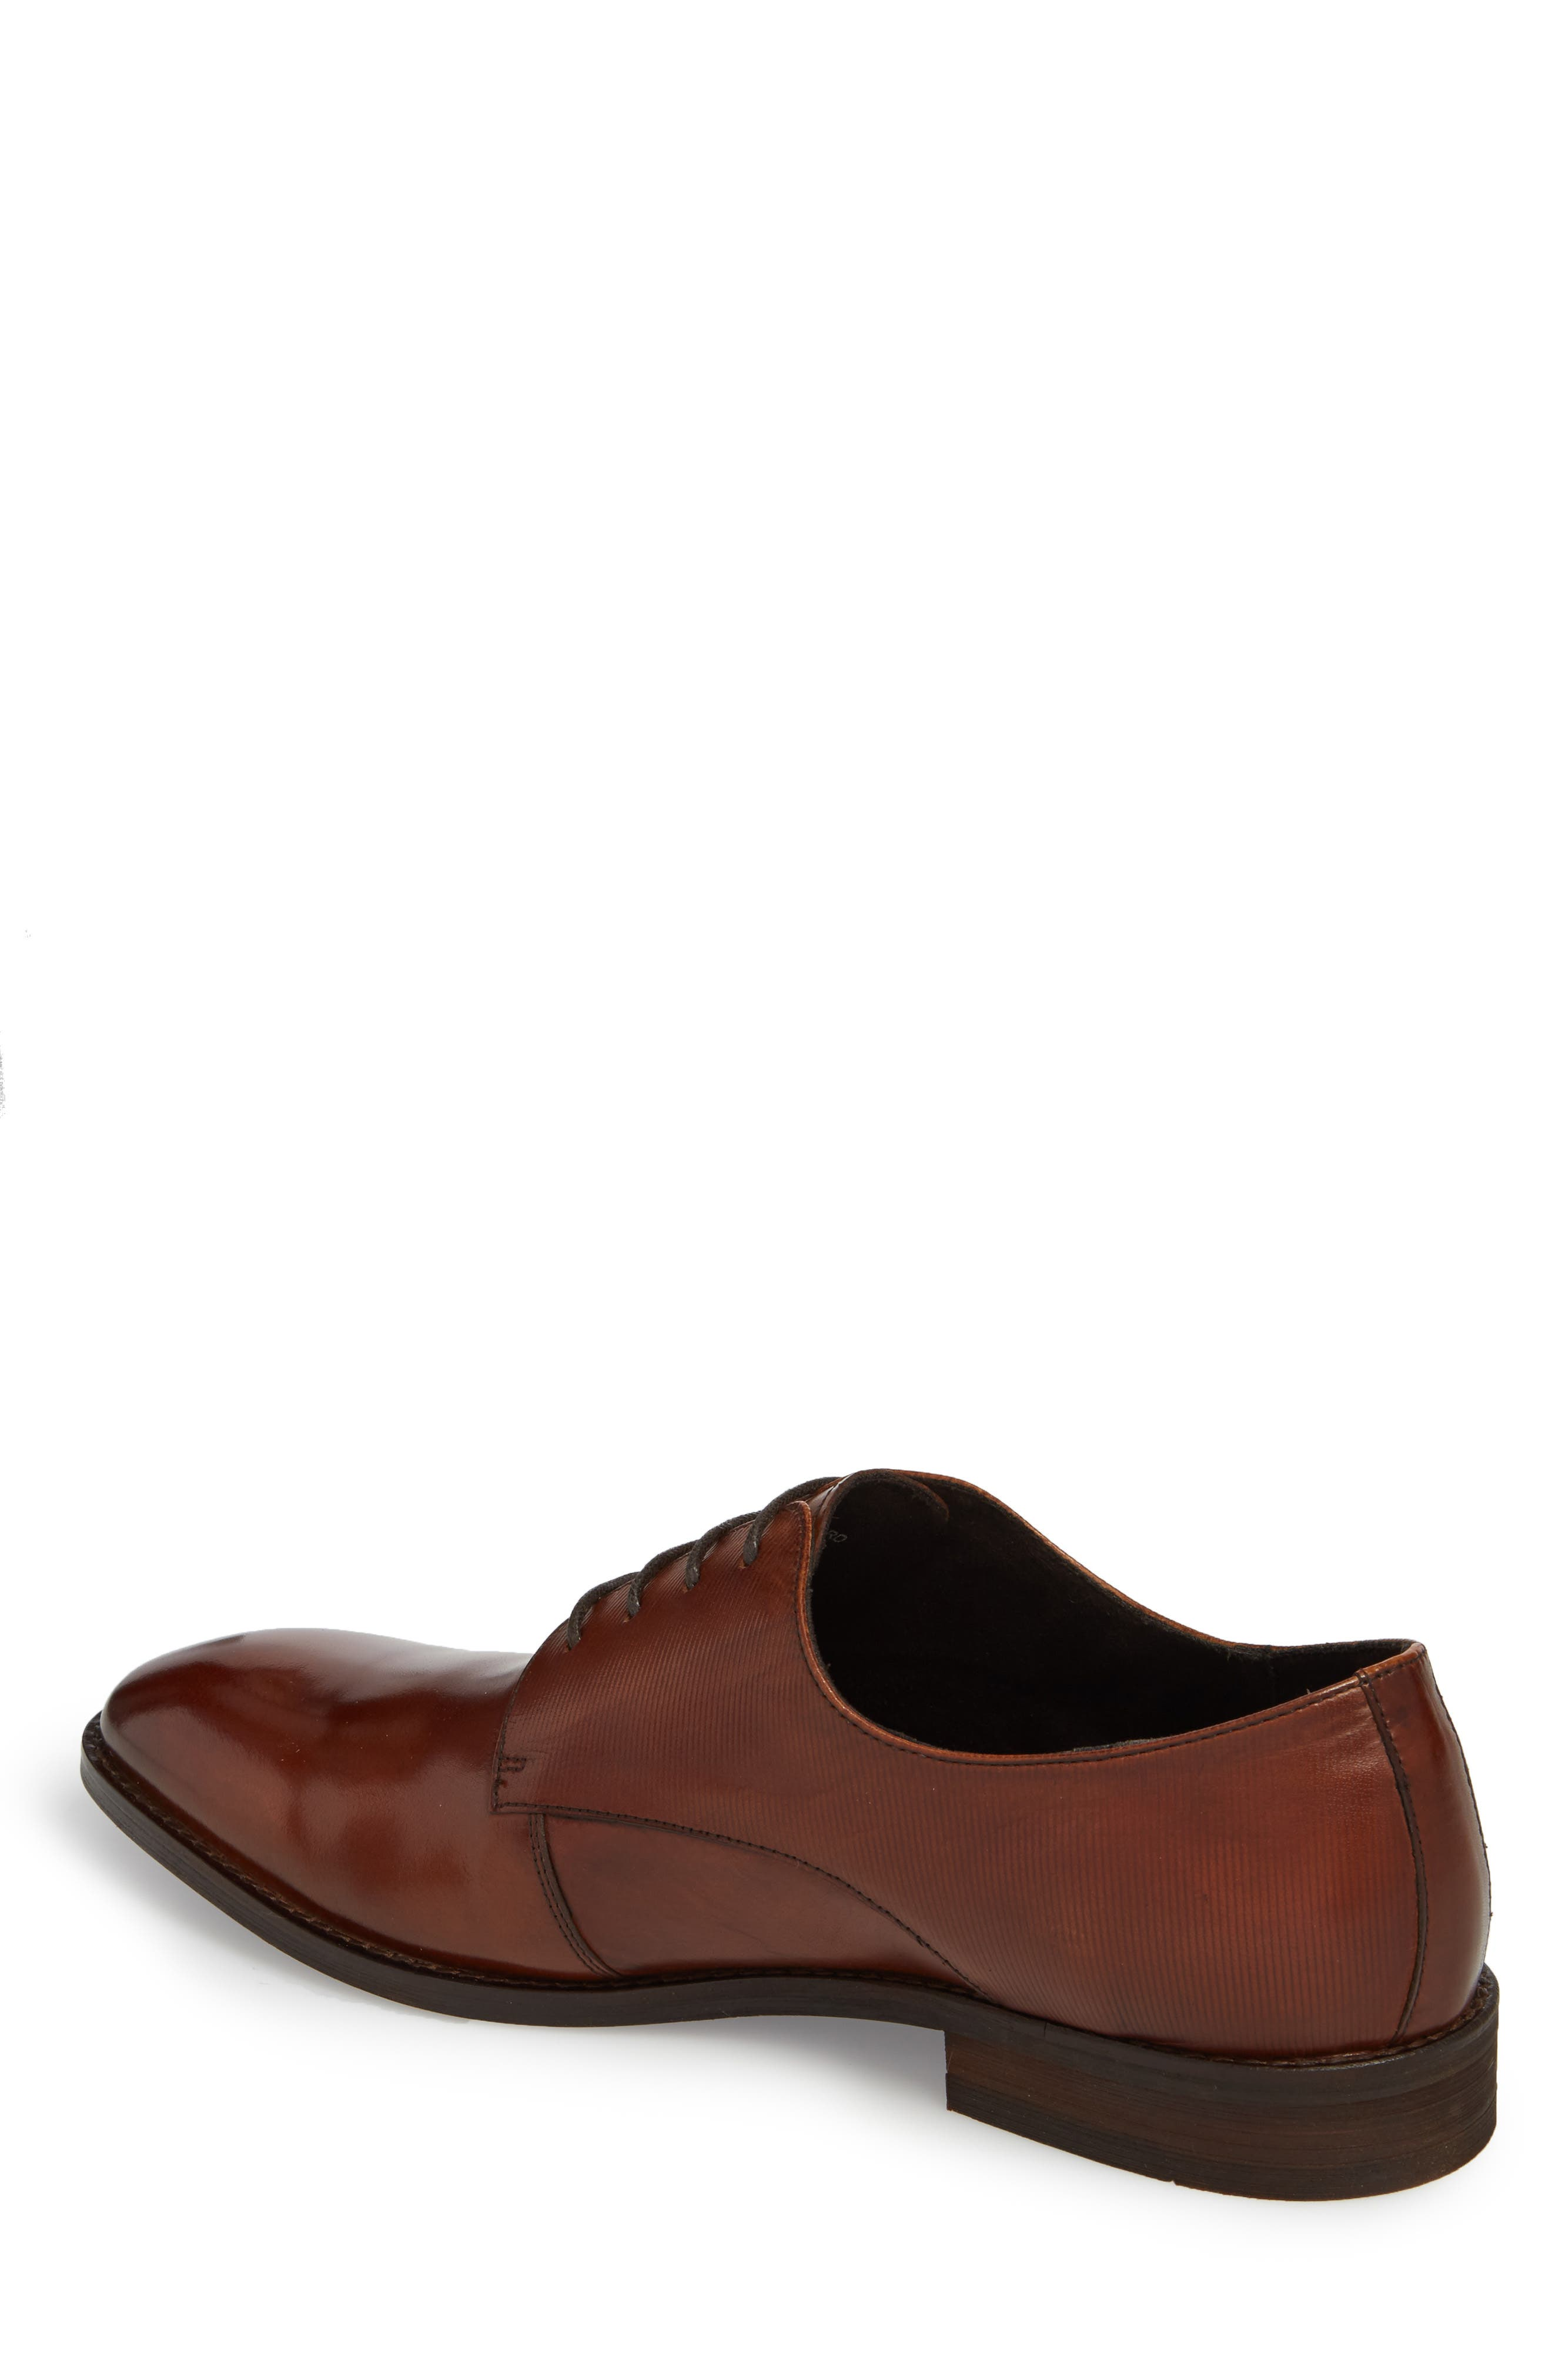 KENNETH COLE NEW YORK,                             Courage Plain Toe Derby,                             Alternate thumbnail 2, color,                             COGNAC LEATHER